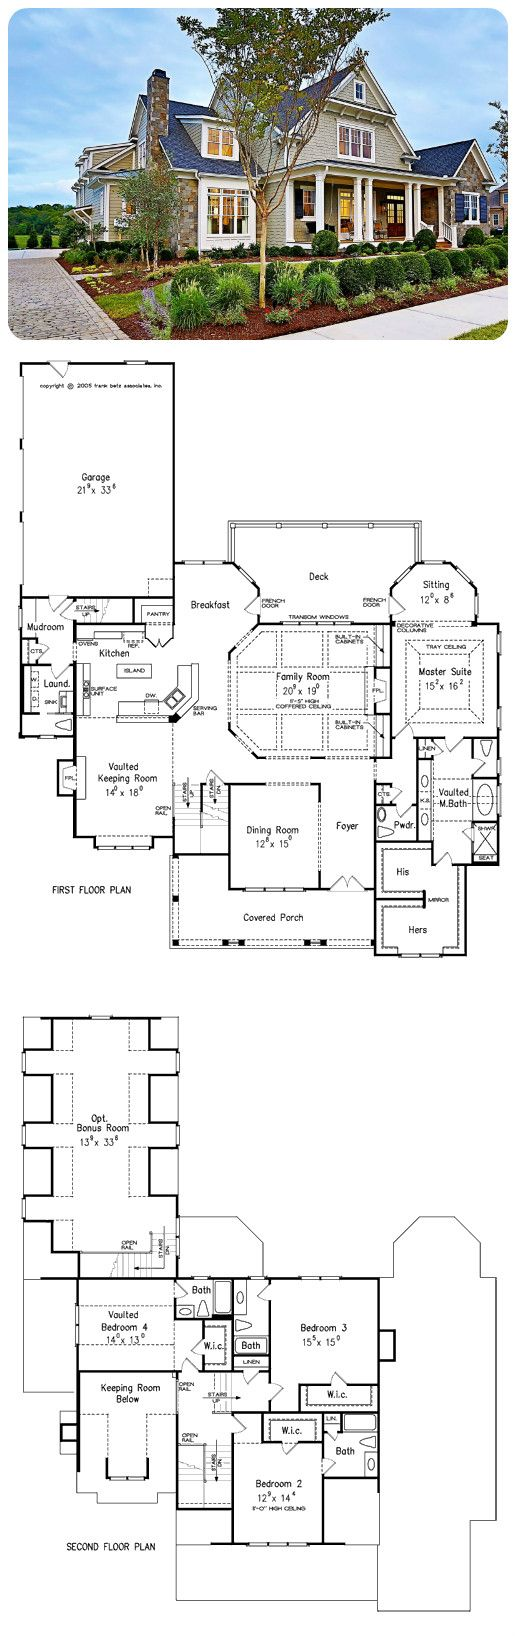 Best 20 House plans ideas on Pinterest Craftsman home plans